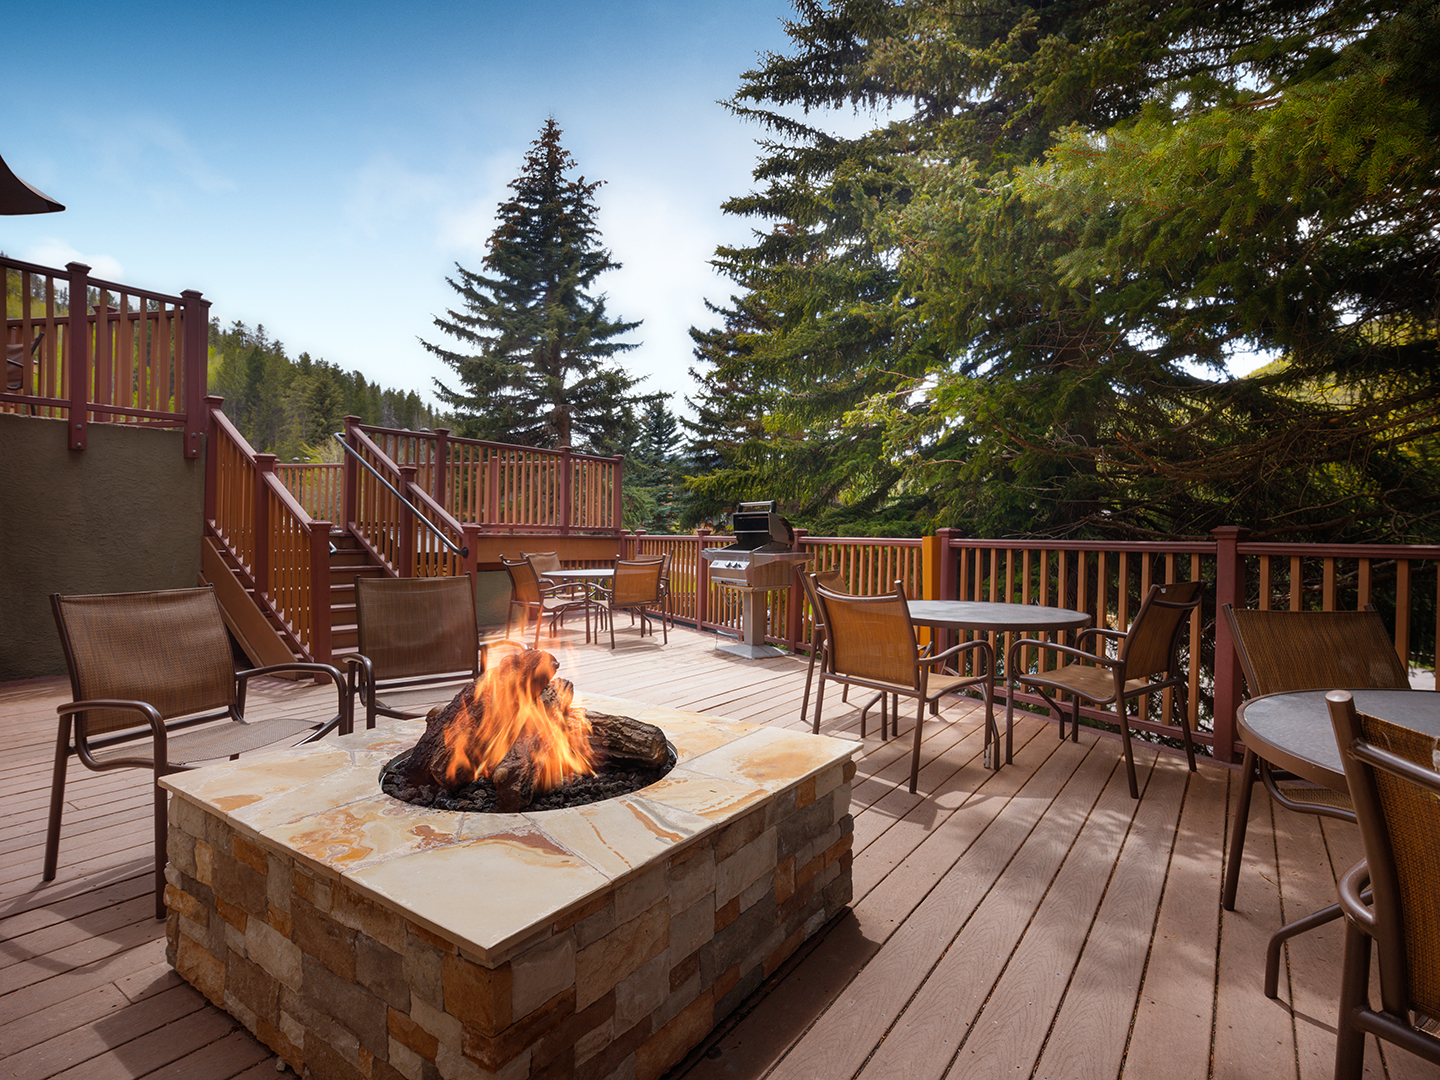 Marriott's StreamSide - Birch Fire Pit. Marriott's StreamSide - Birch is located in Vail, Colorado United States.